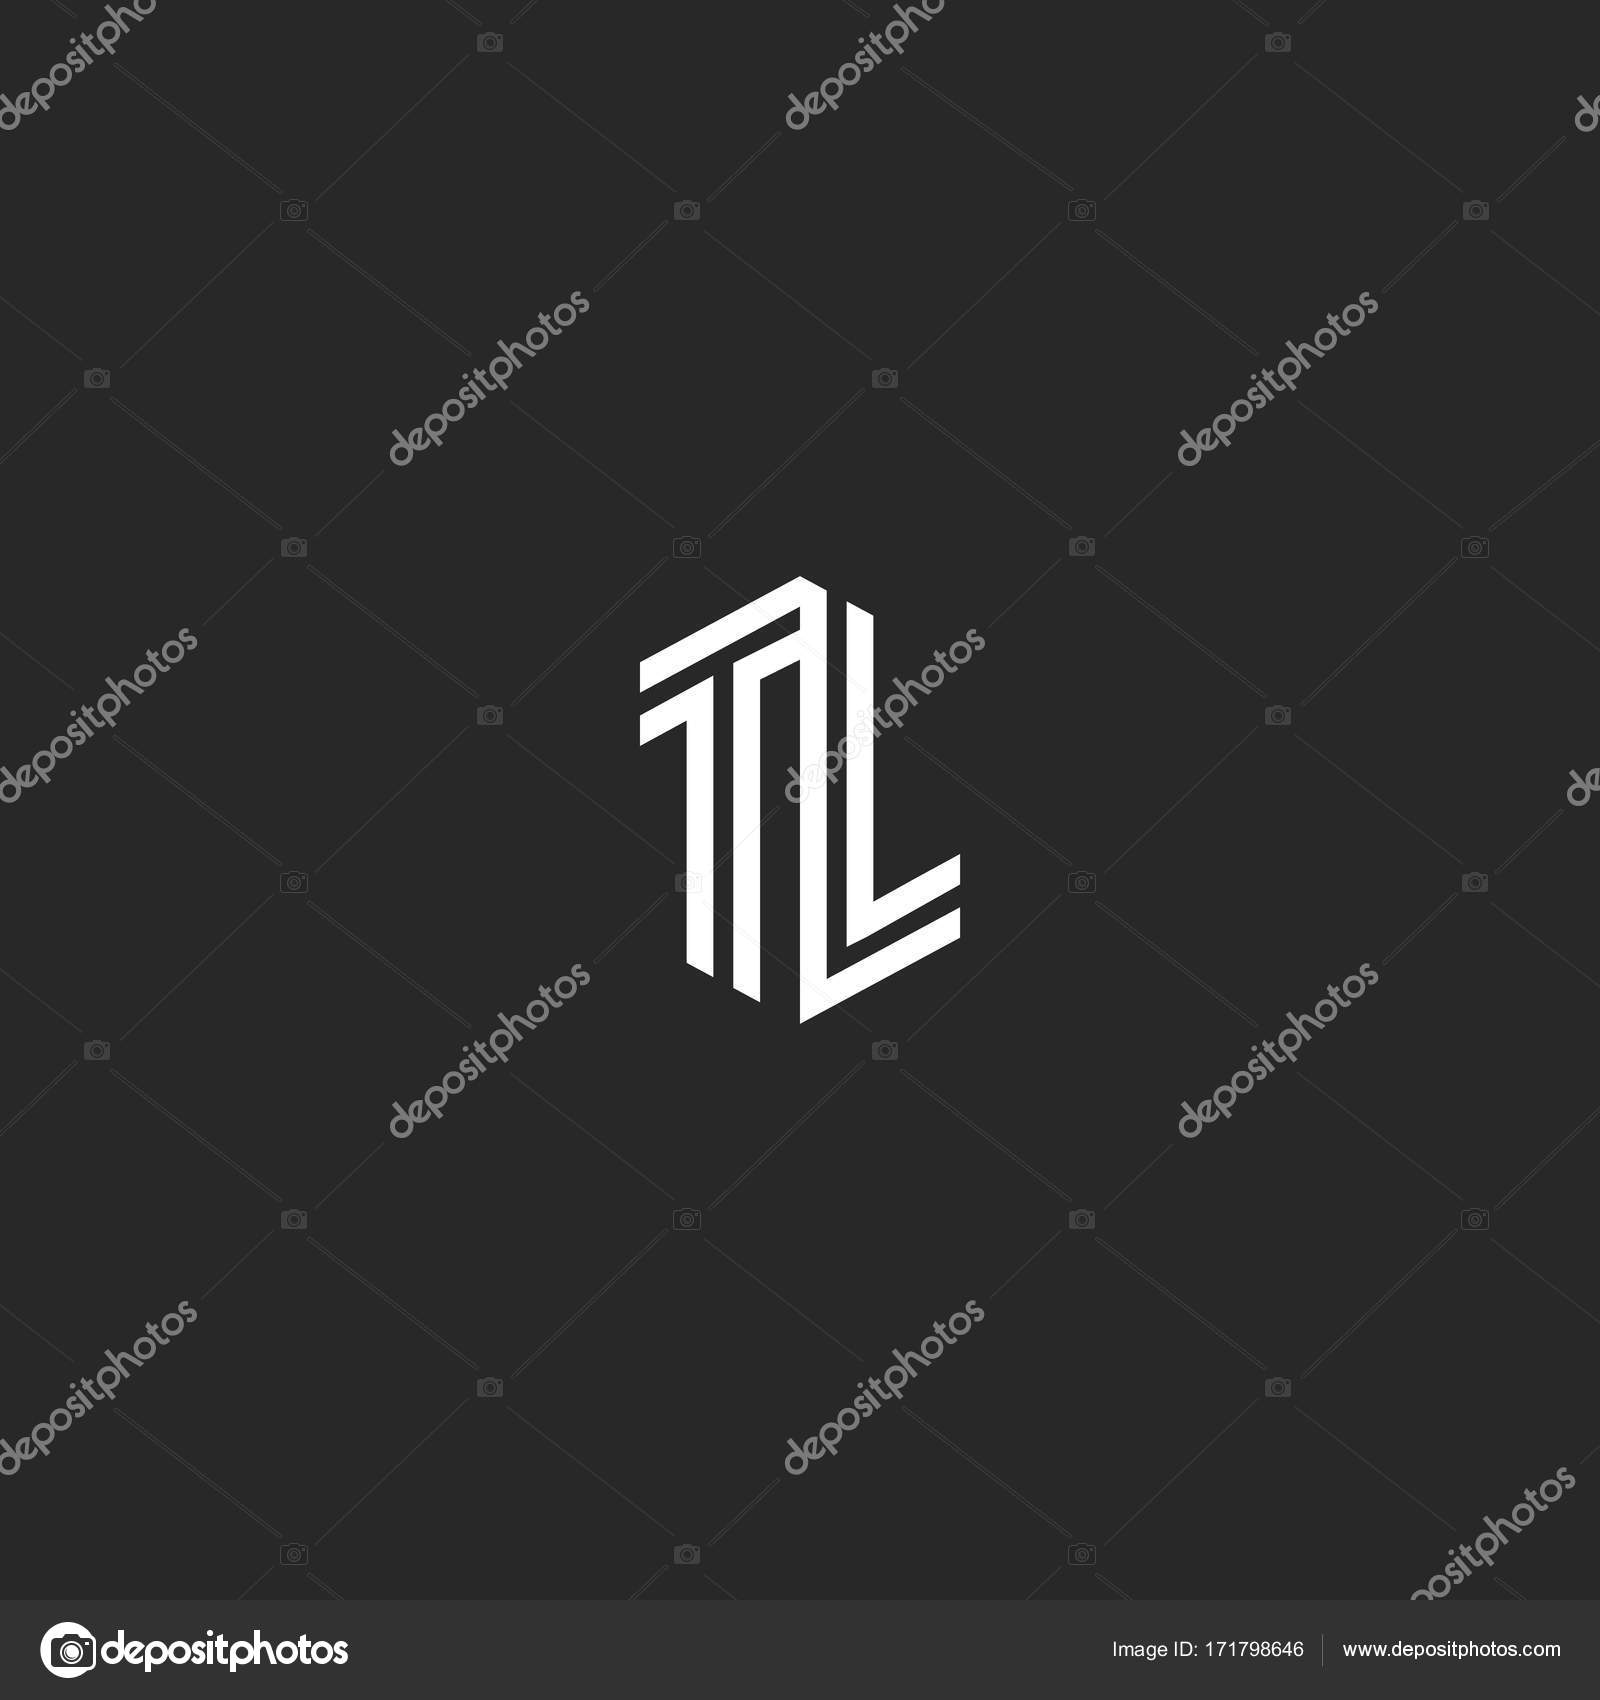 initials tl letters logo combination two capital letters t and l wedding emblem lt monogram